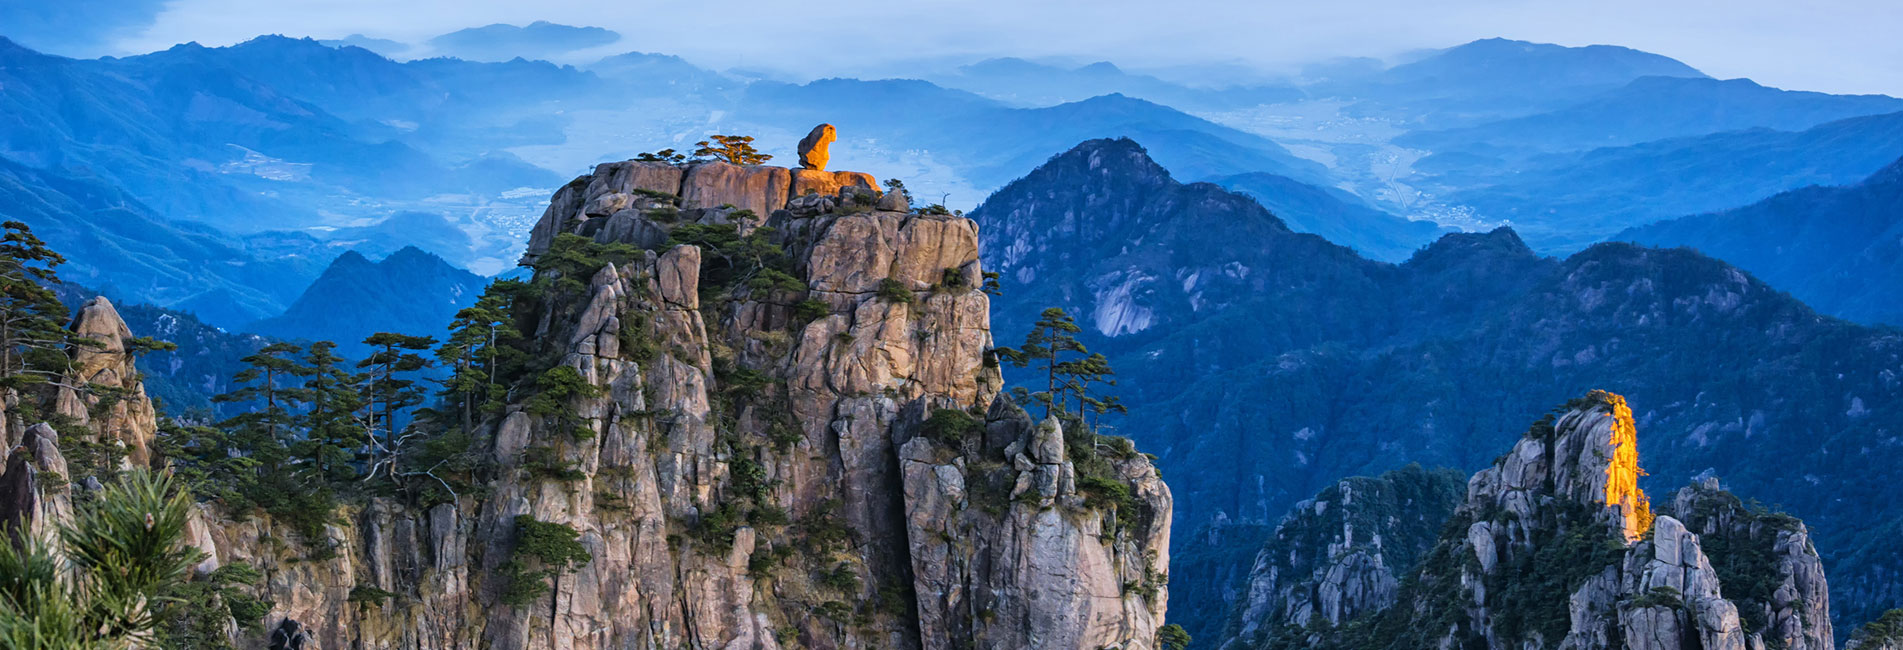 the landscape of the Yellow Mountains, Huangshan